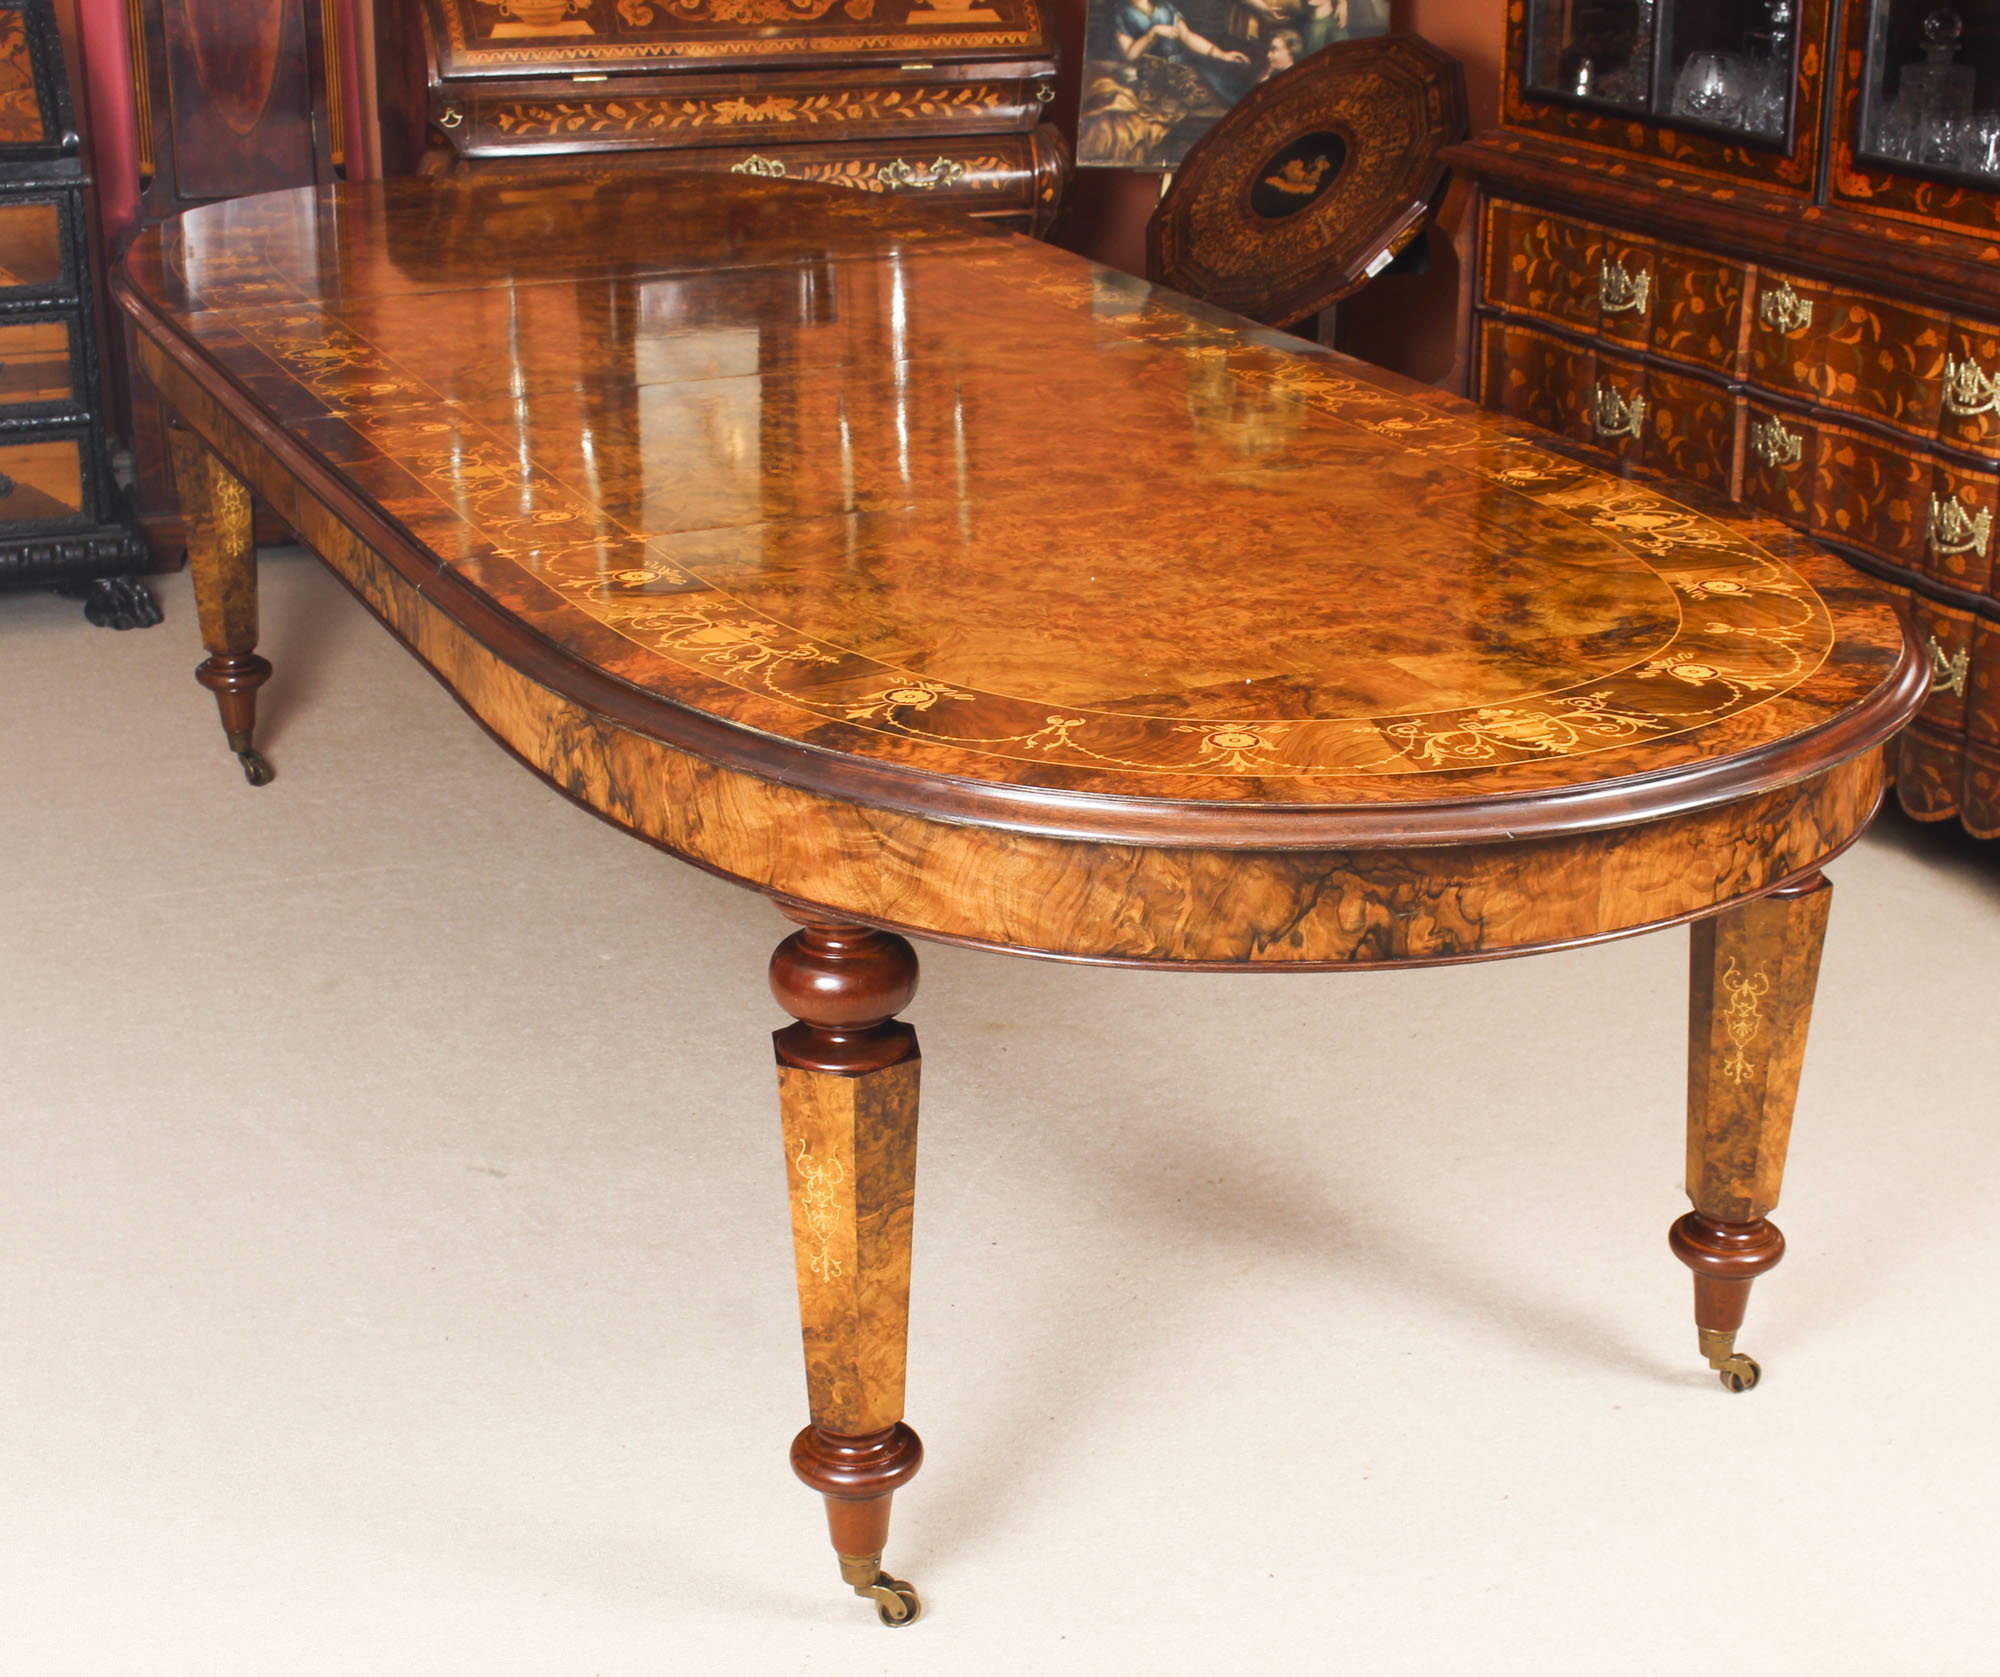 Large Oval Marquetry Dining Table Bespoke Burr Walnut  : 00059 Stunning Bespoke Handmade Burr Walnut 10ft Oval Marquetry Dining Table 1 from www.regentantiques.com size 768 x 768 jpeg 37kB